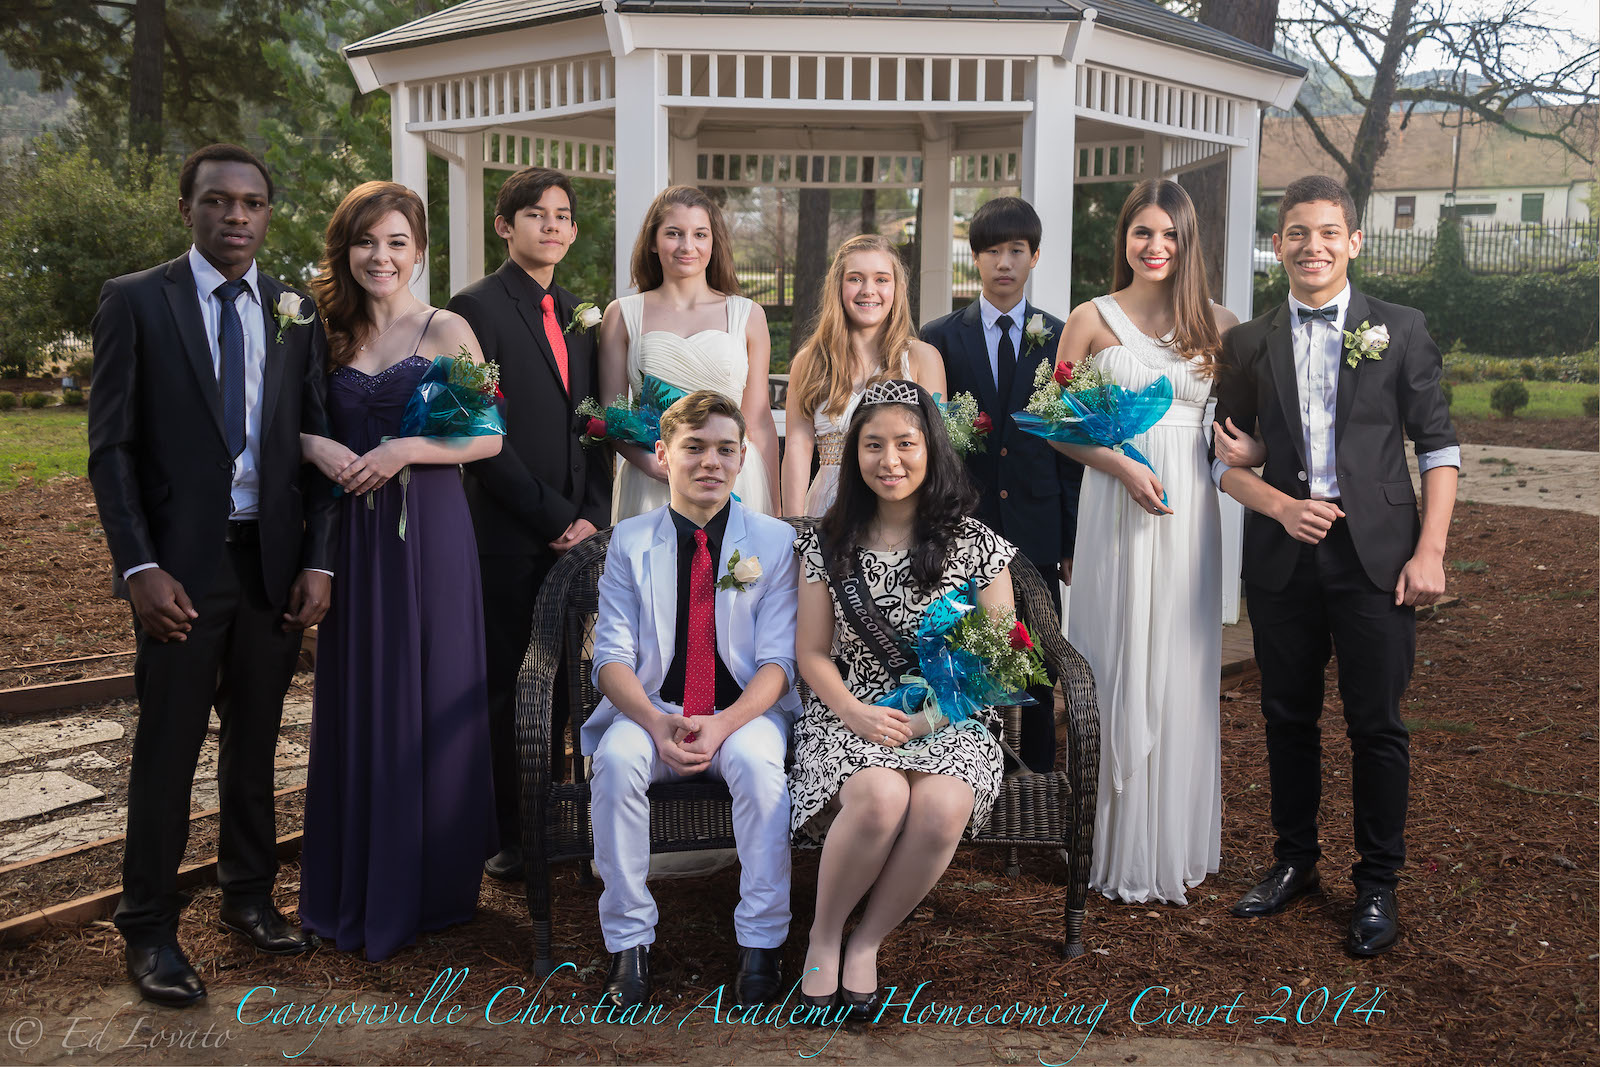 canyonville christian academy, homecoming court, 2014, international students